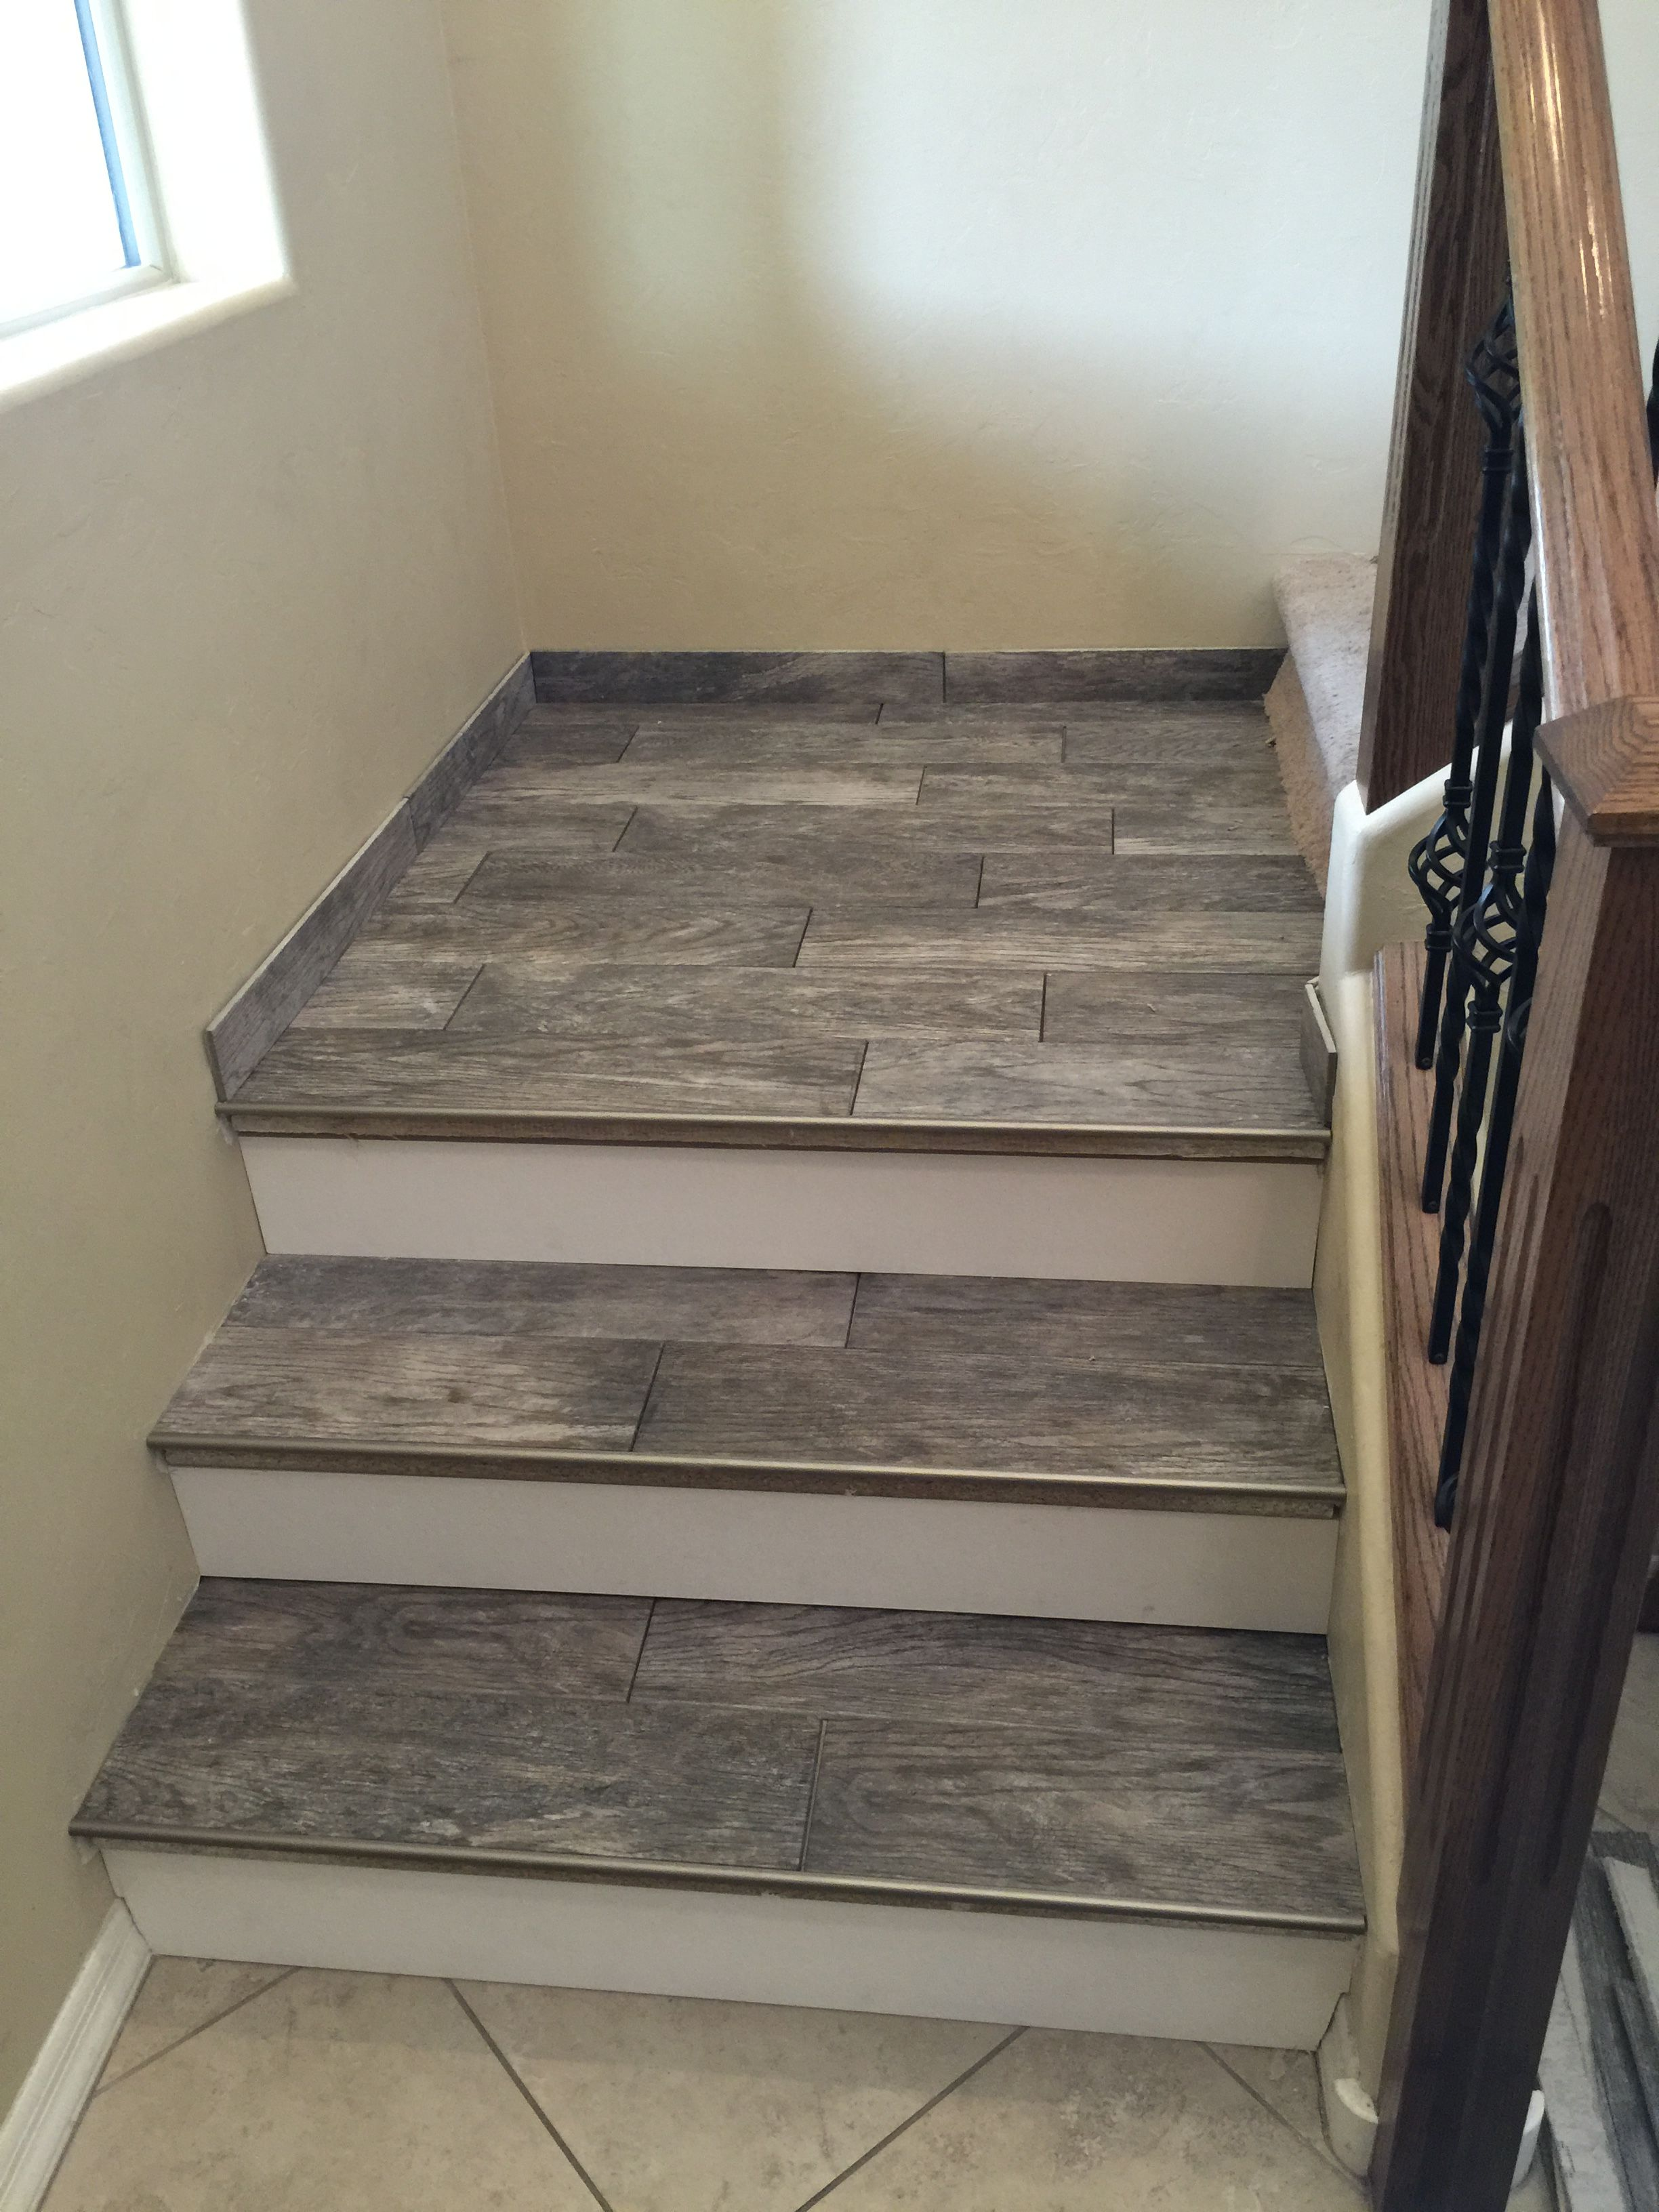 Flooring Ideas For Stairs Porcelain Wood Look Tile Stairs Design And Build Tile